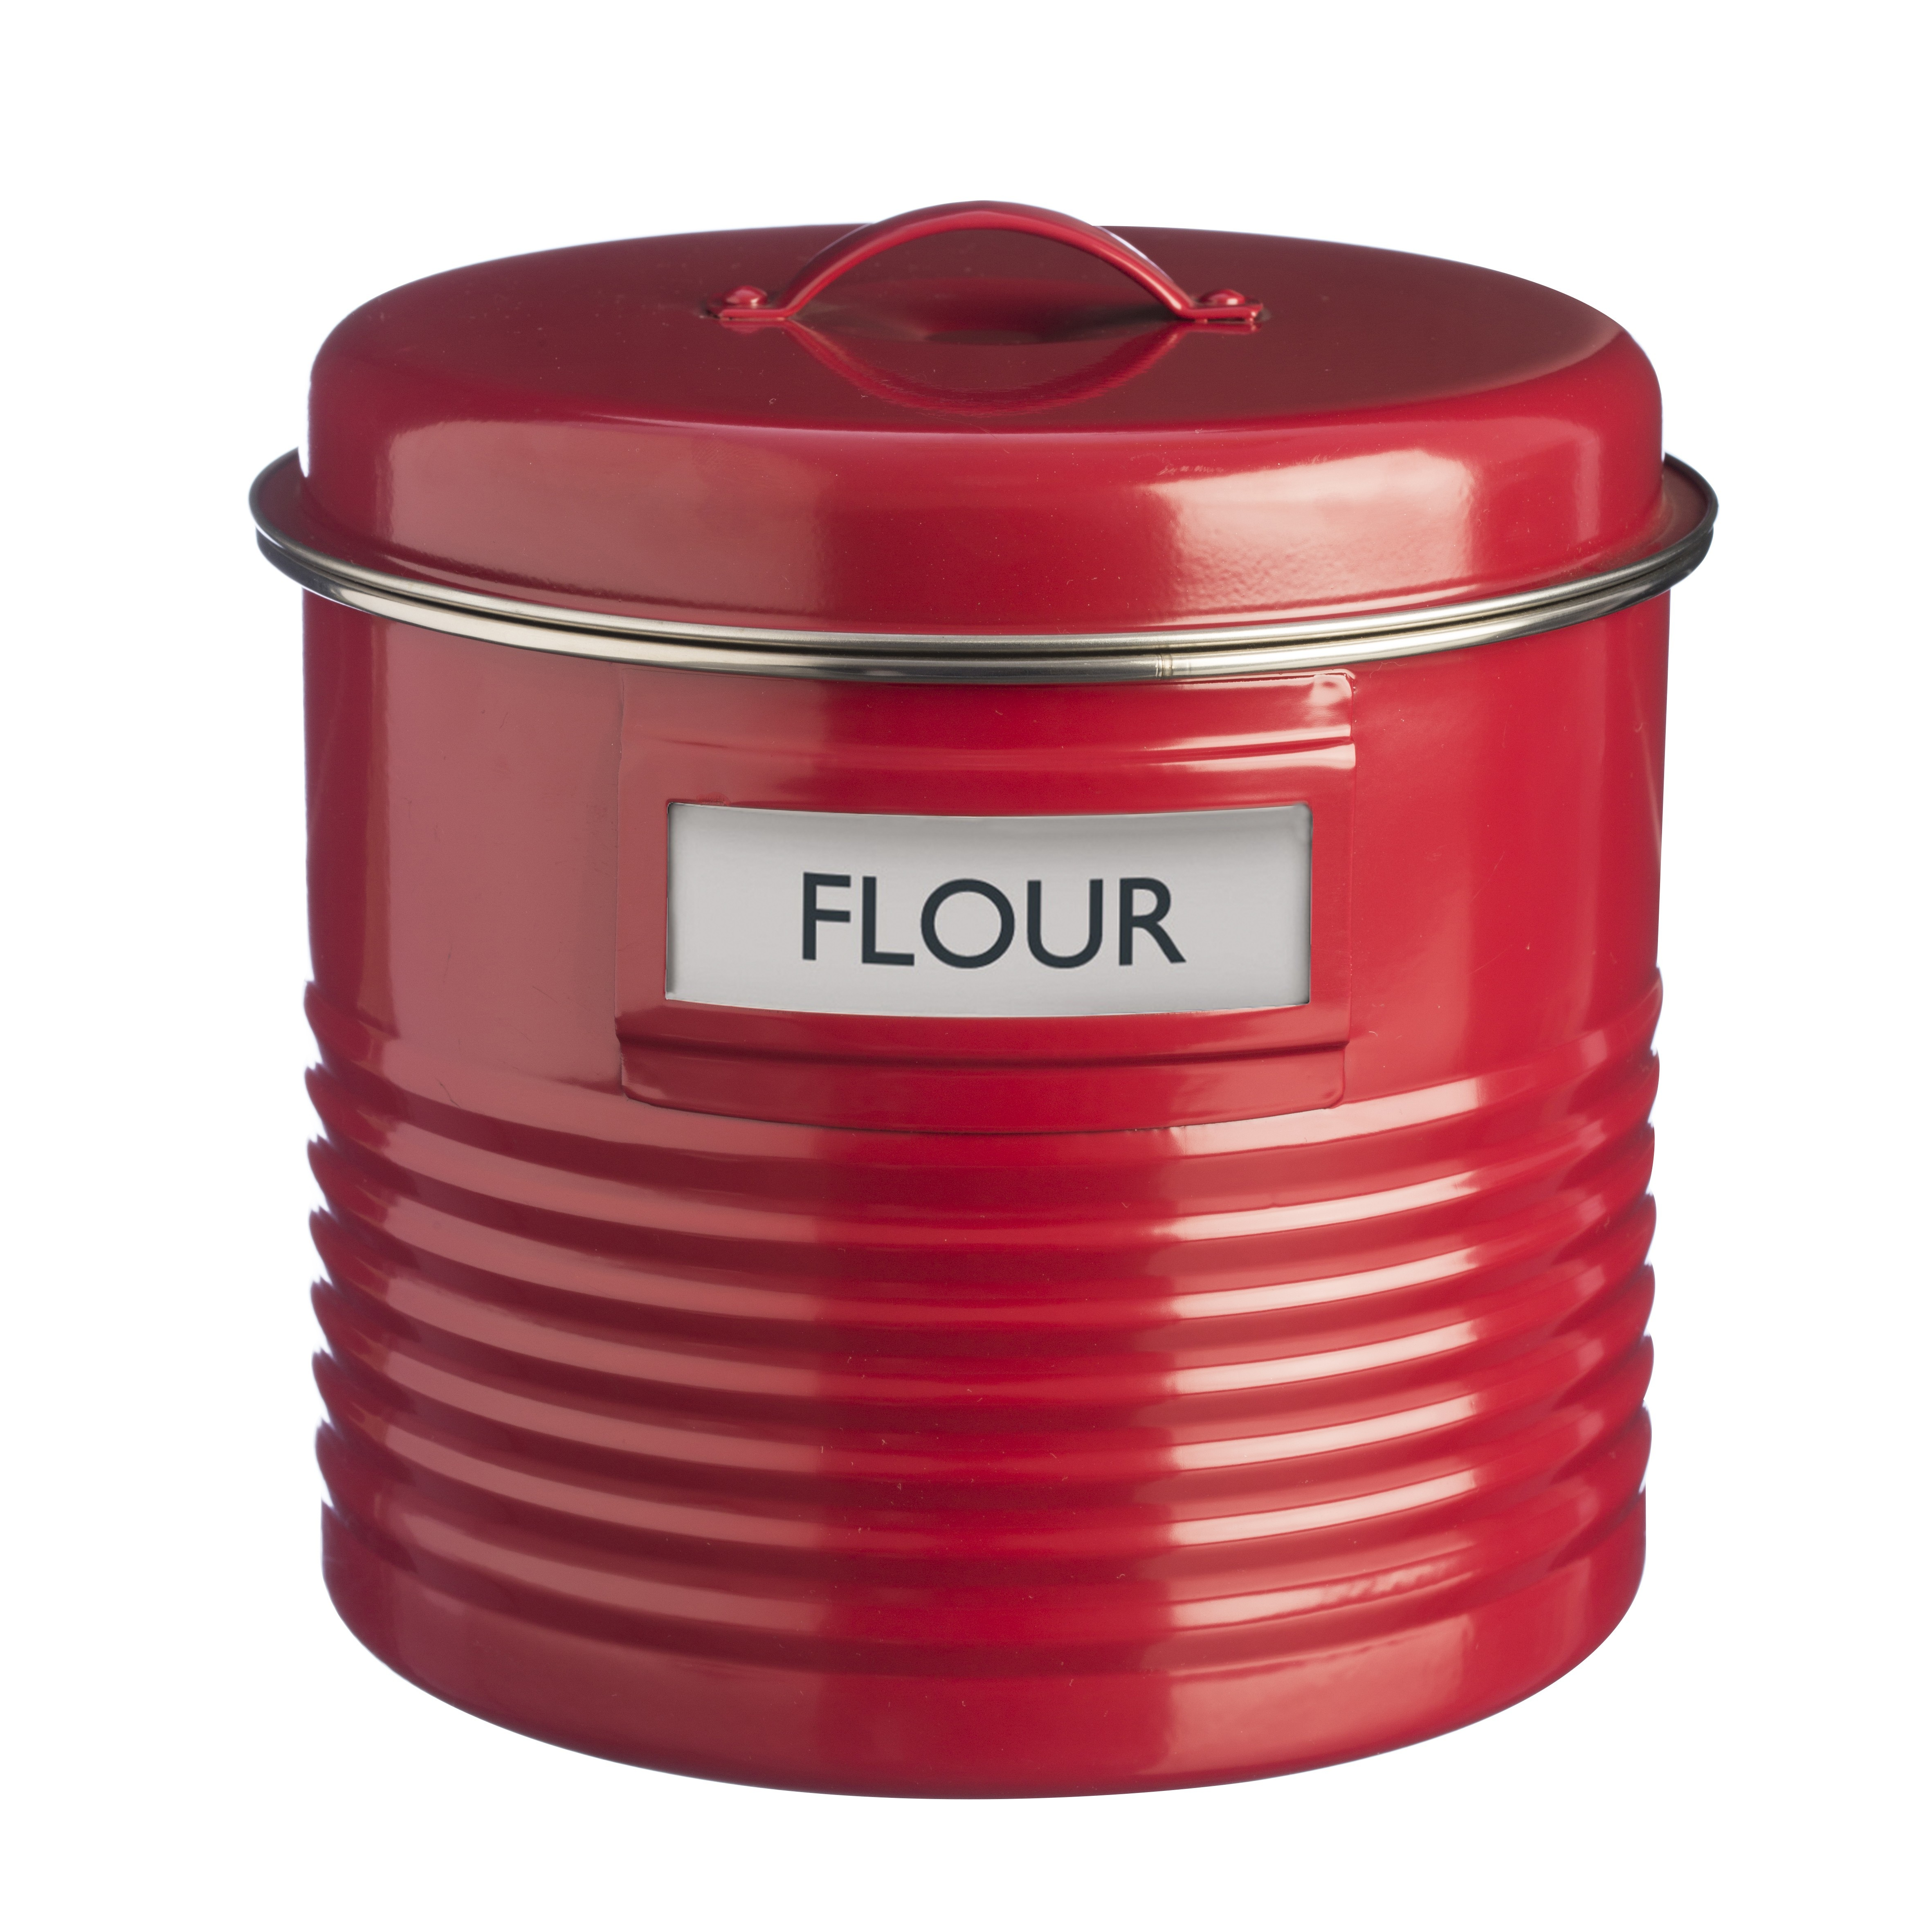 large kitchen canisters typhoon vintage inspired large metal kitchen flour canister red retro farmhouse ebay 2746